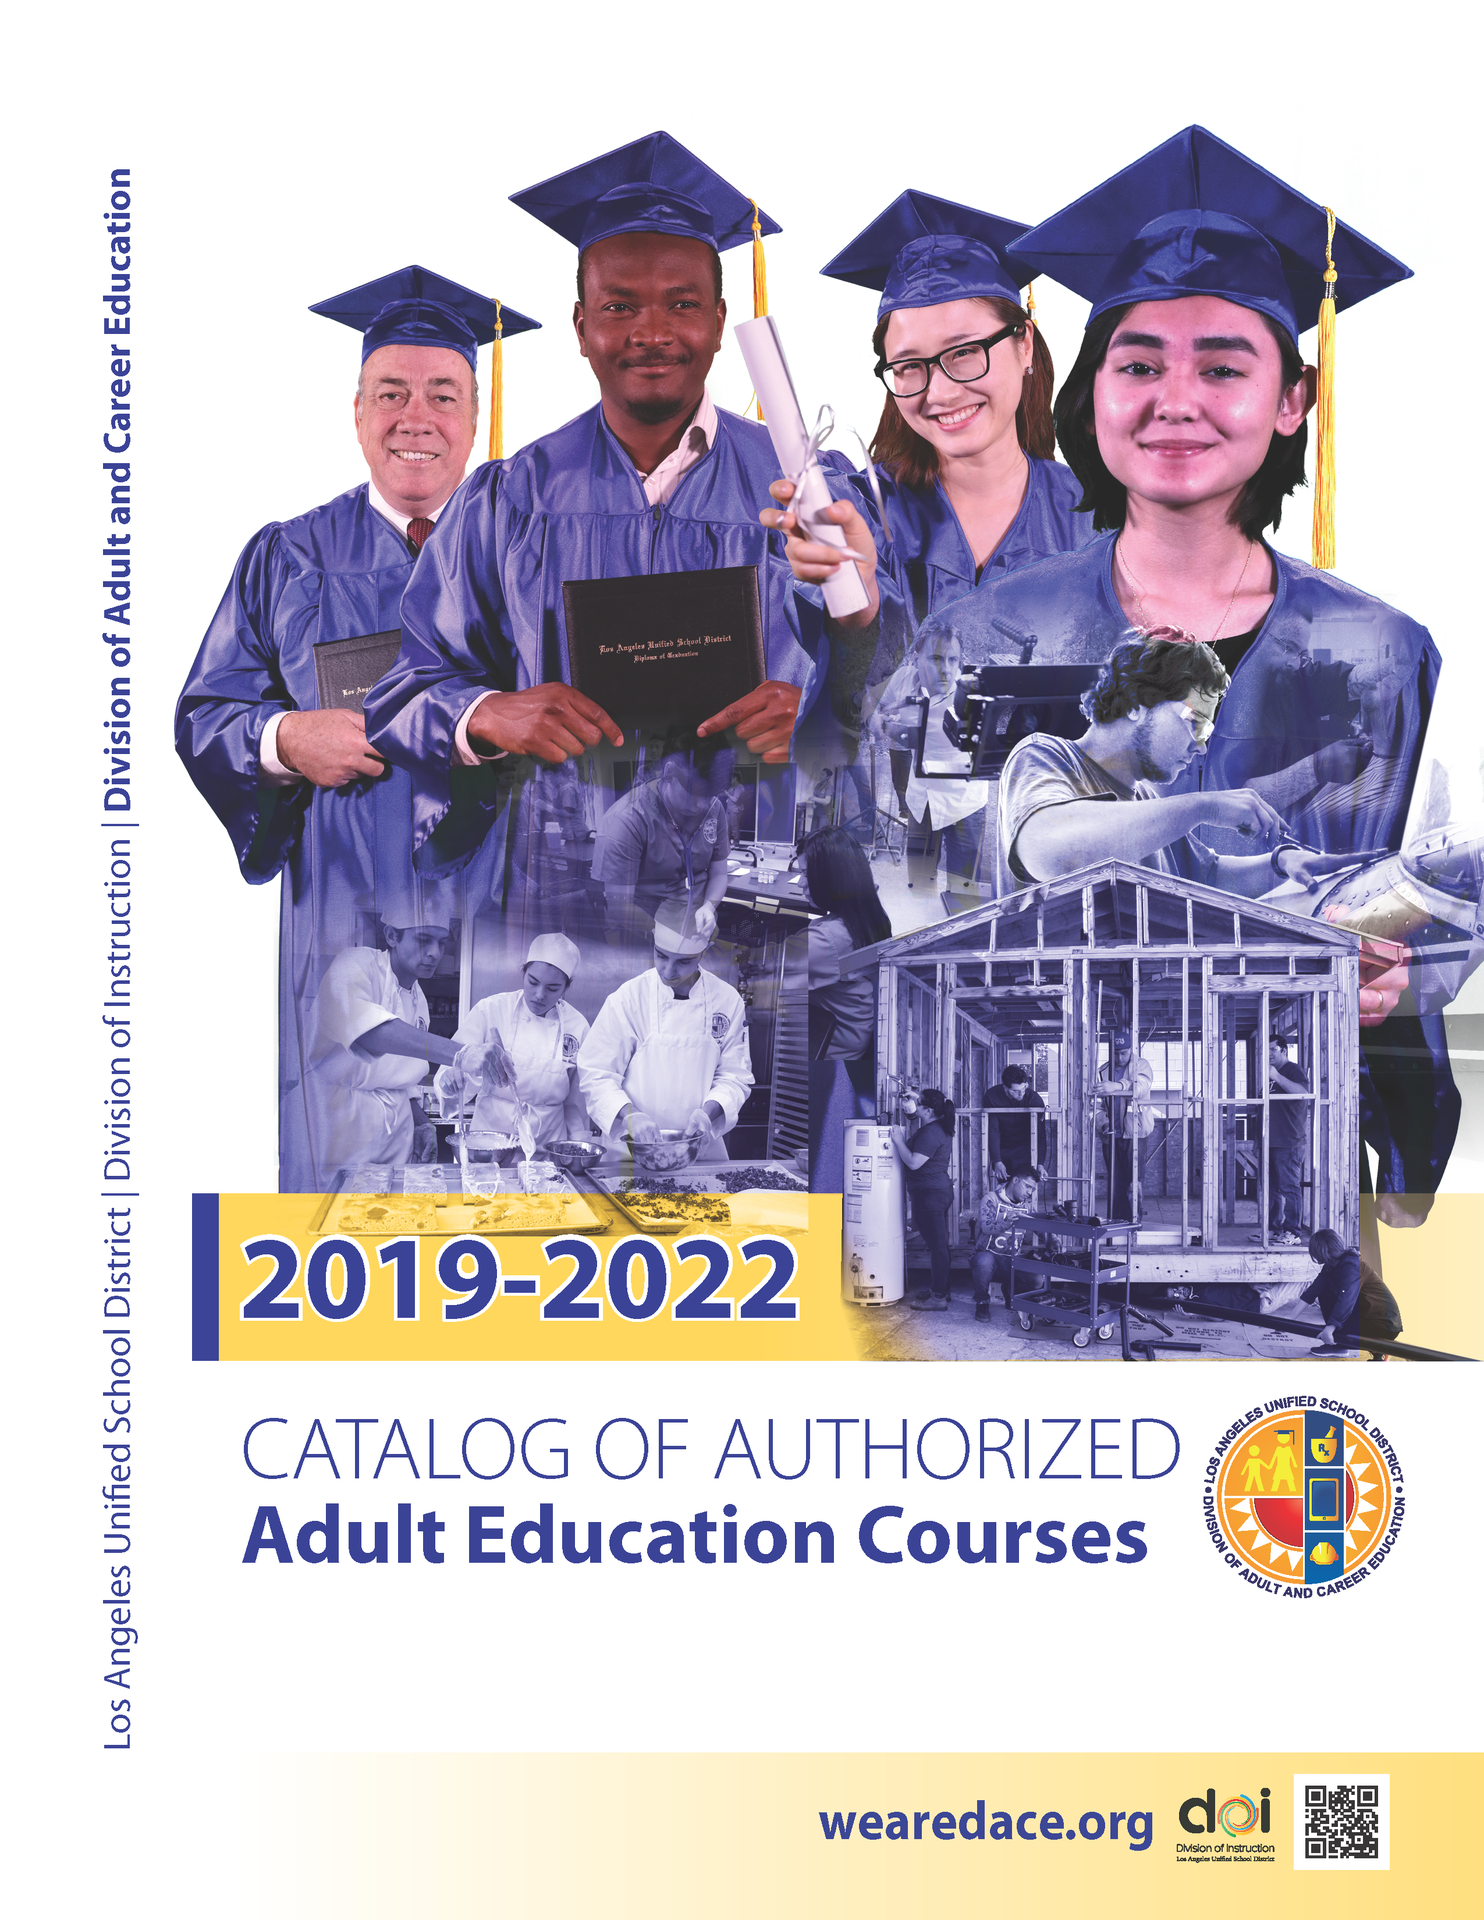 2019-2022 Catalog of Authorized Adult Education Courses